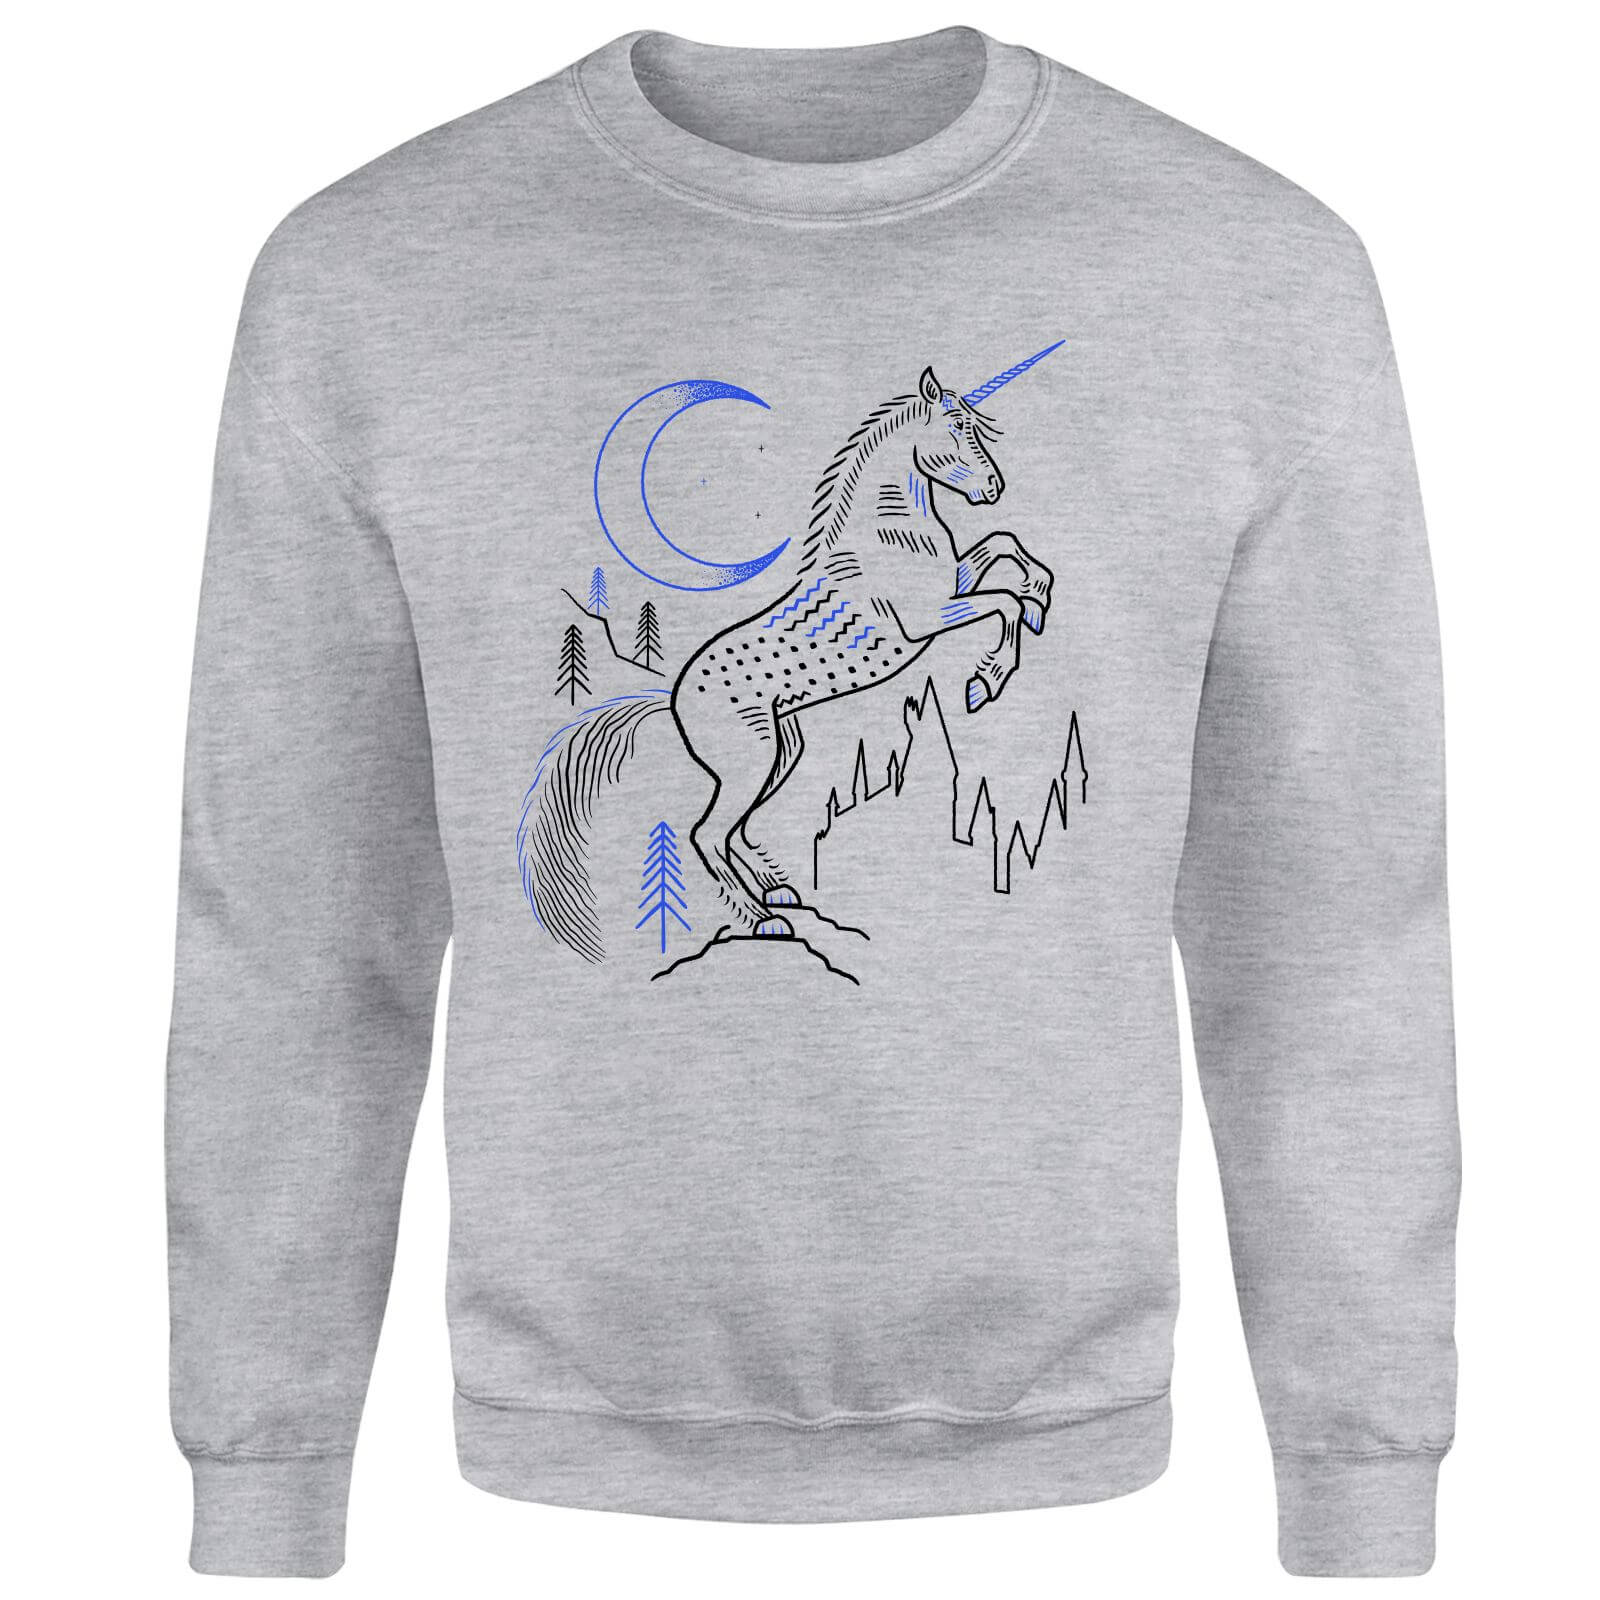 Harry Potter Unicorn Line Art Sweatshirt - Grey